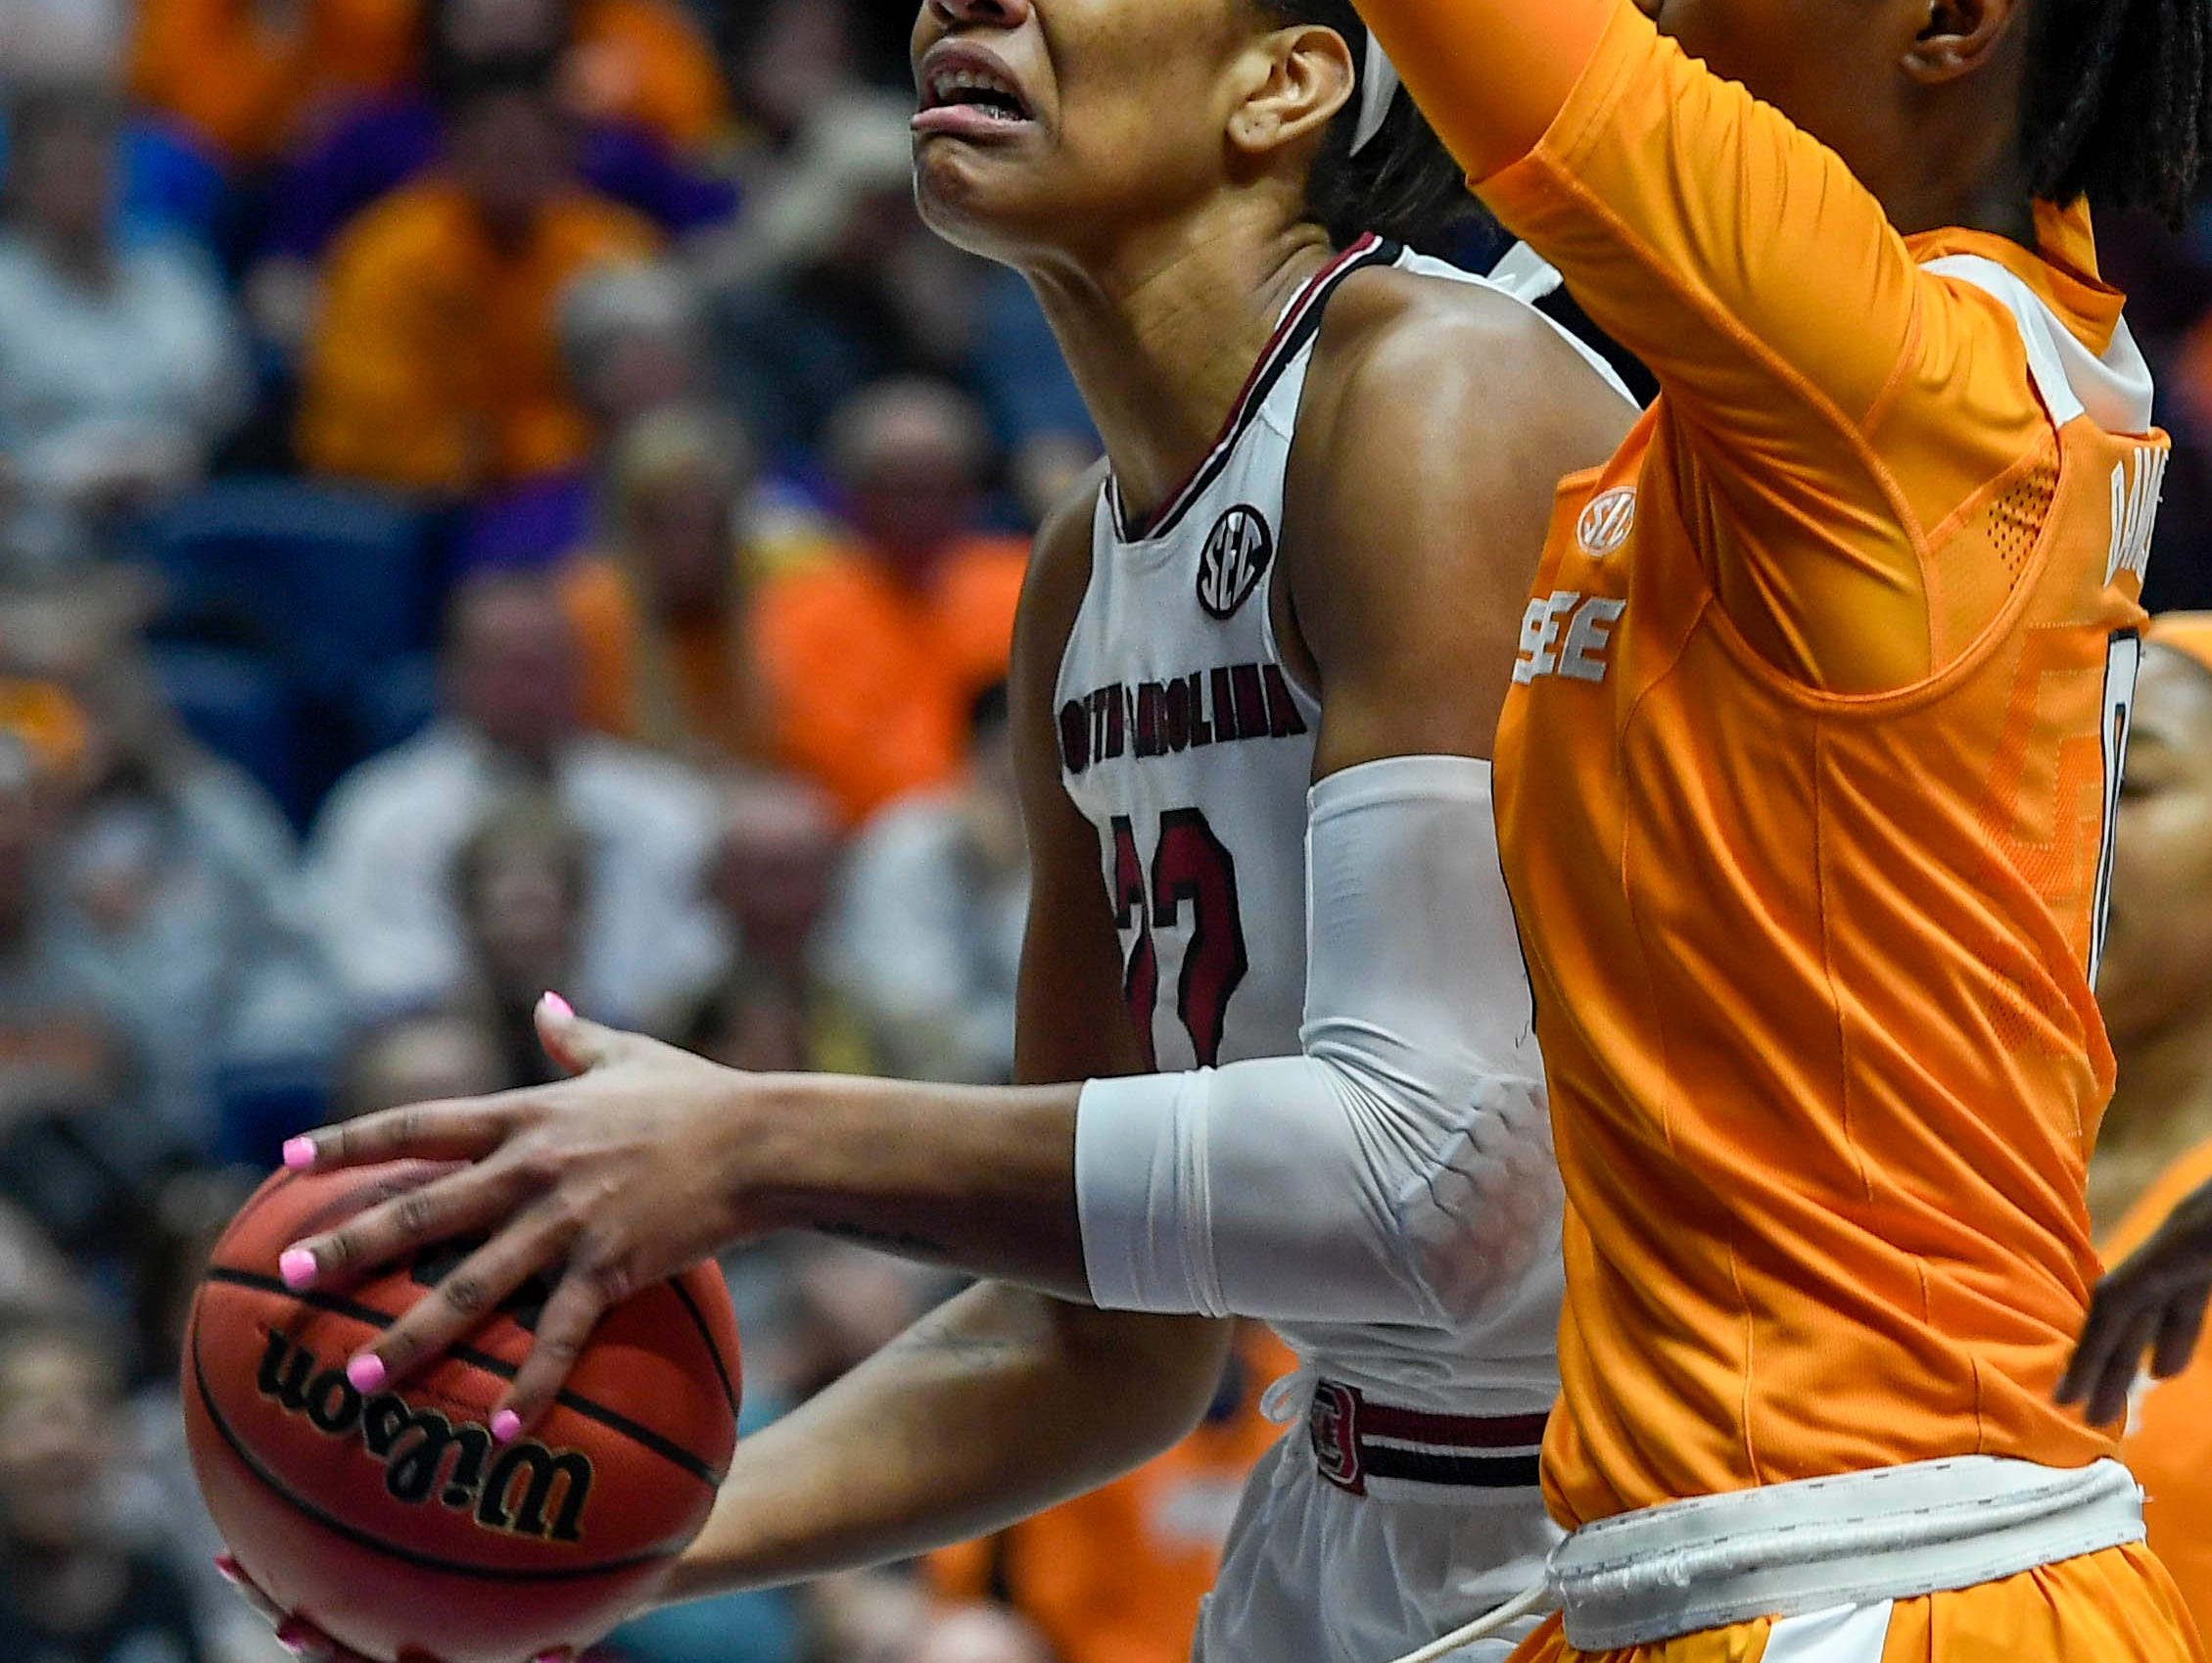 South Carolina Gamecocks forward A'ja Wilson (22) is blocked by Tennessee Lady Volunteers guard/forward Rennia Davis (0) in the first half of the game during round 3 of the SEC Women's Basketball Tournament at the Bridgestone Arena in Nashville, Tenn., Friday, March 2, 2018.